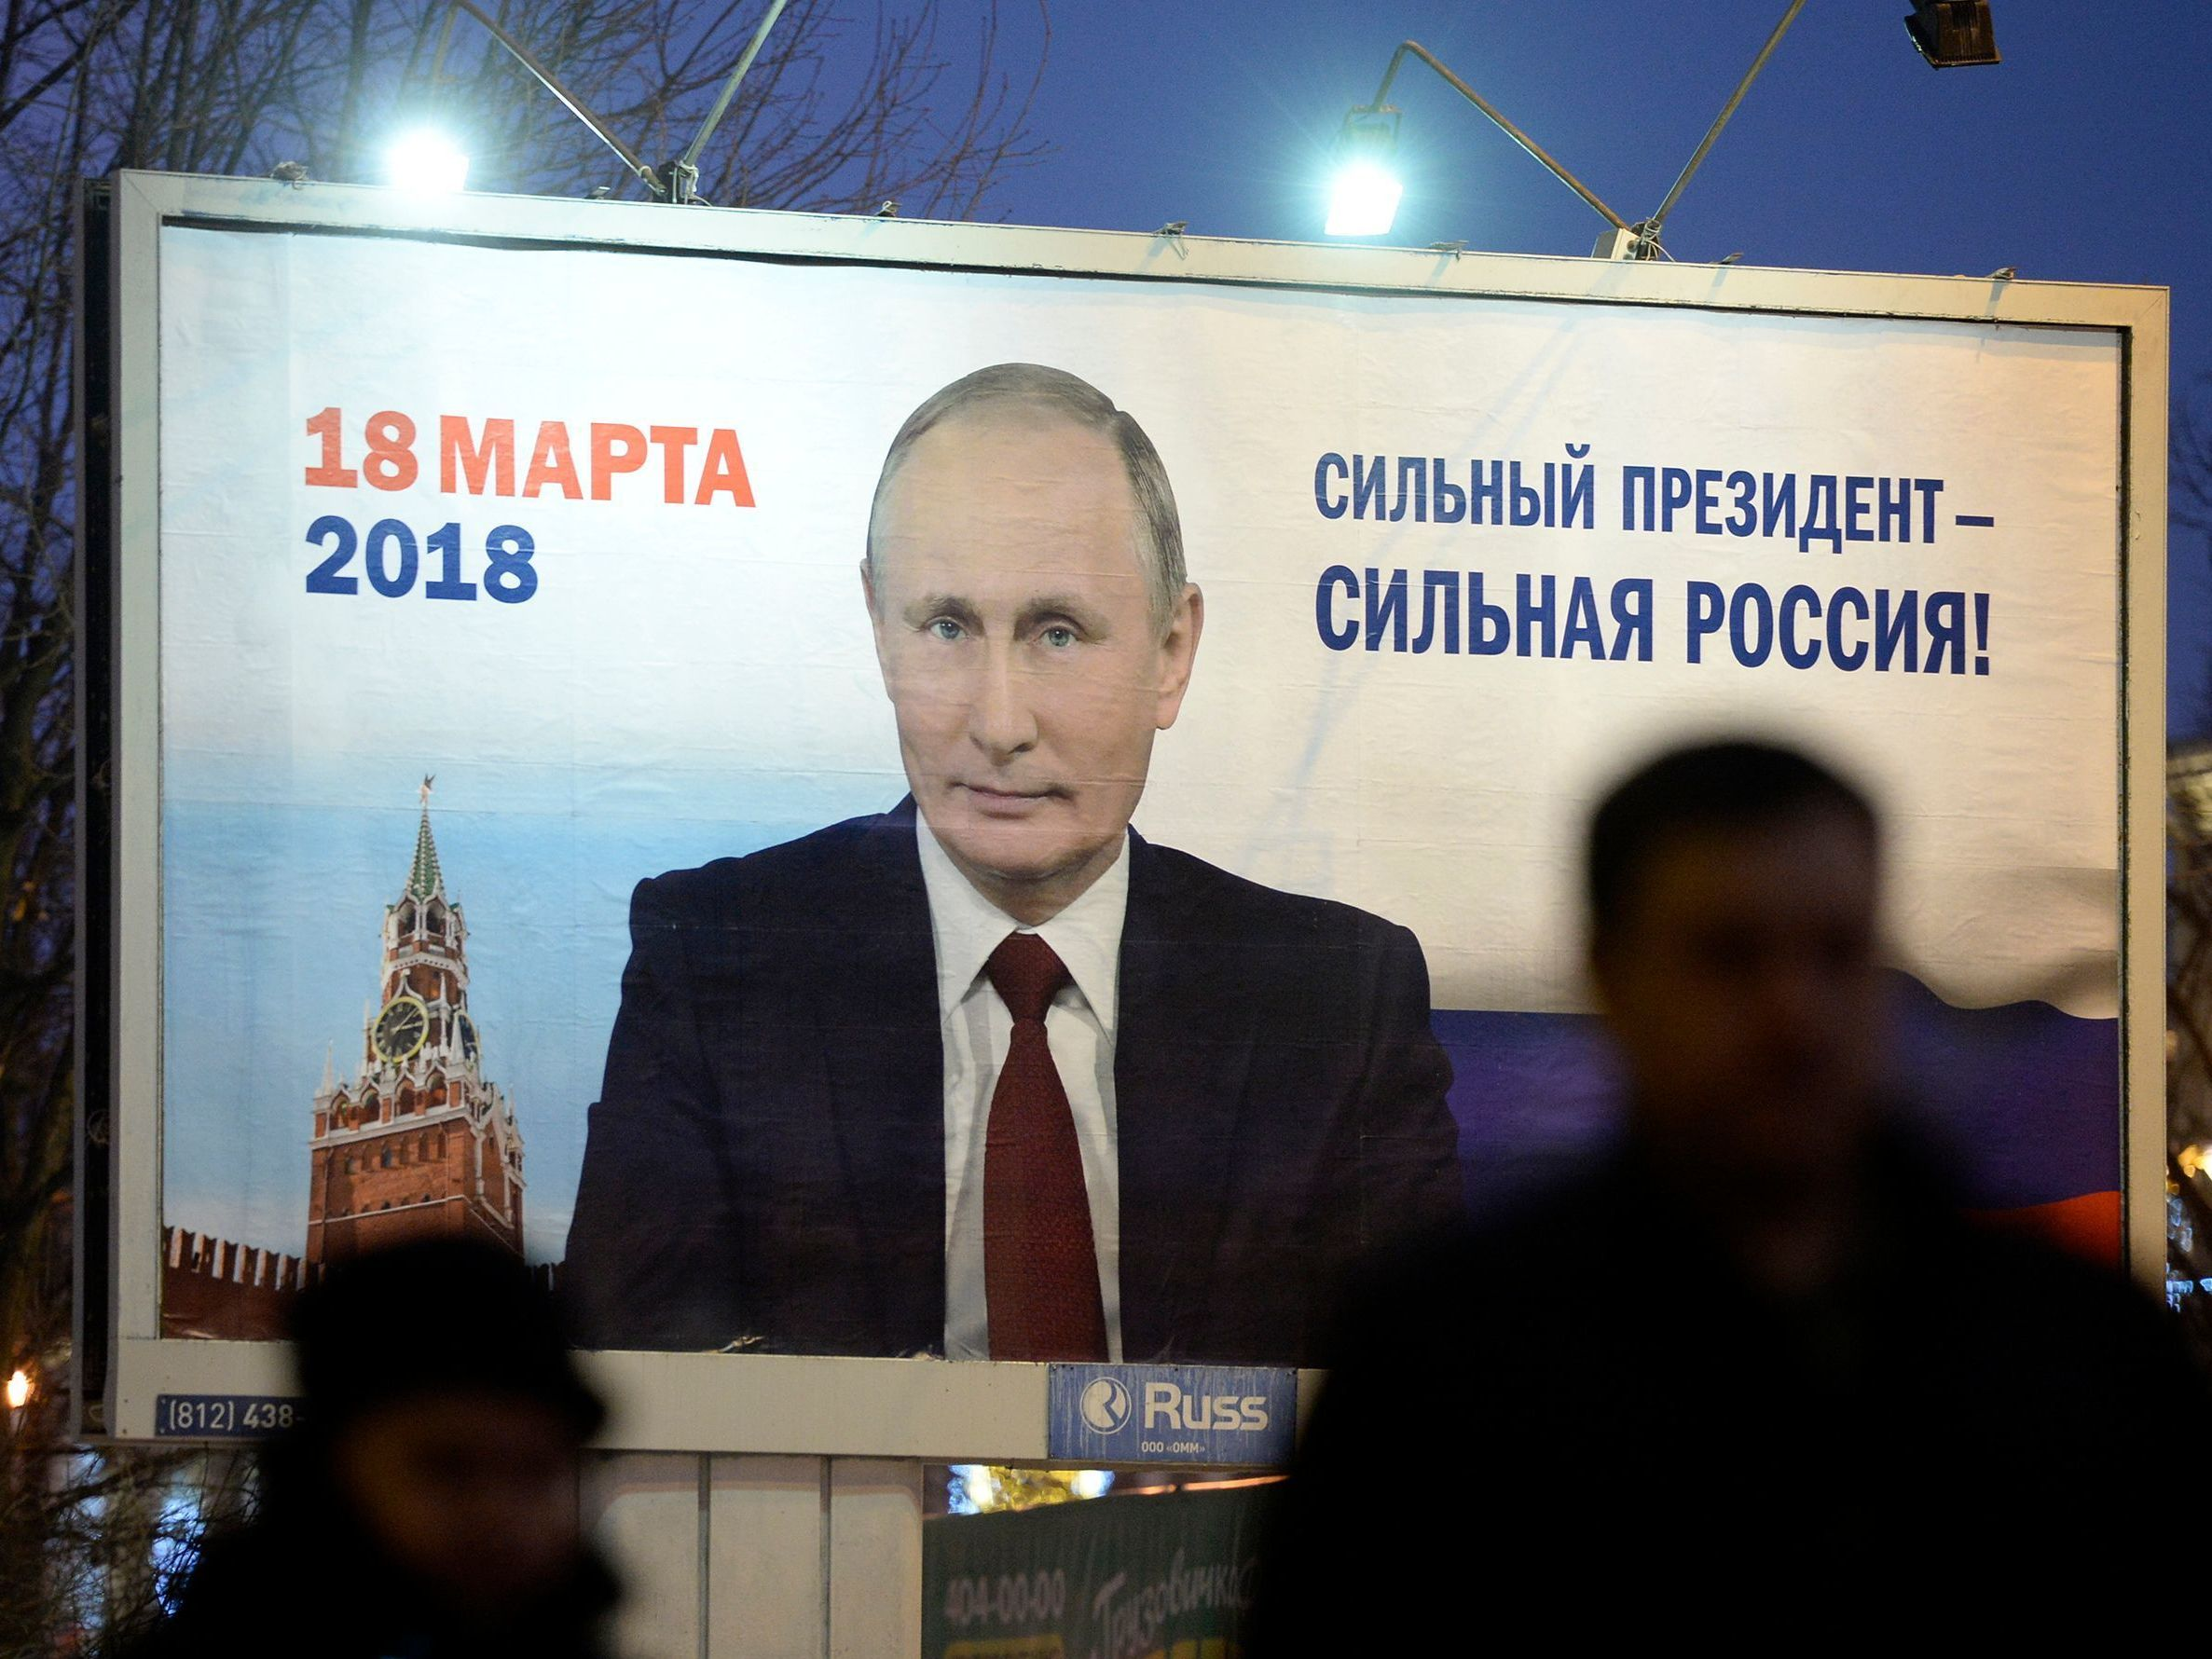 Russia's Presidential Election Observers Were Pressured ...